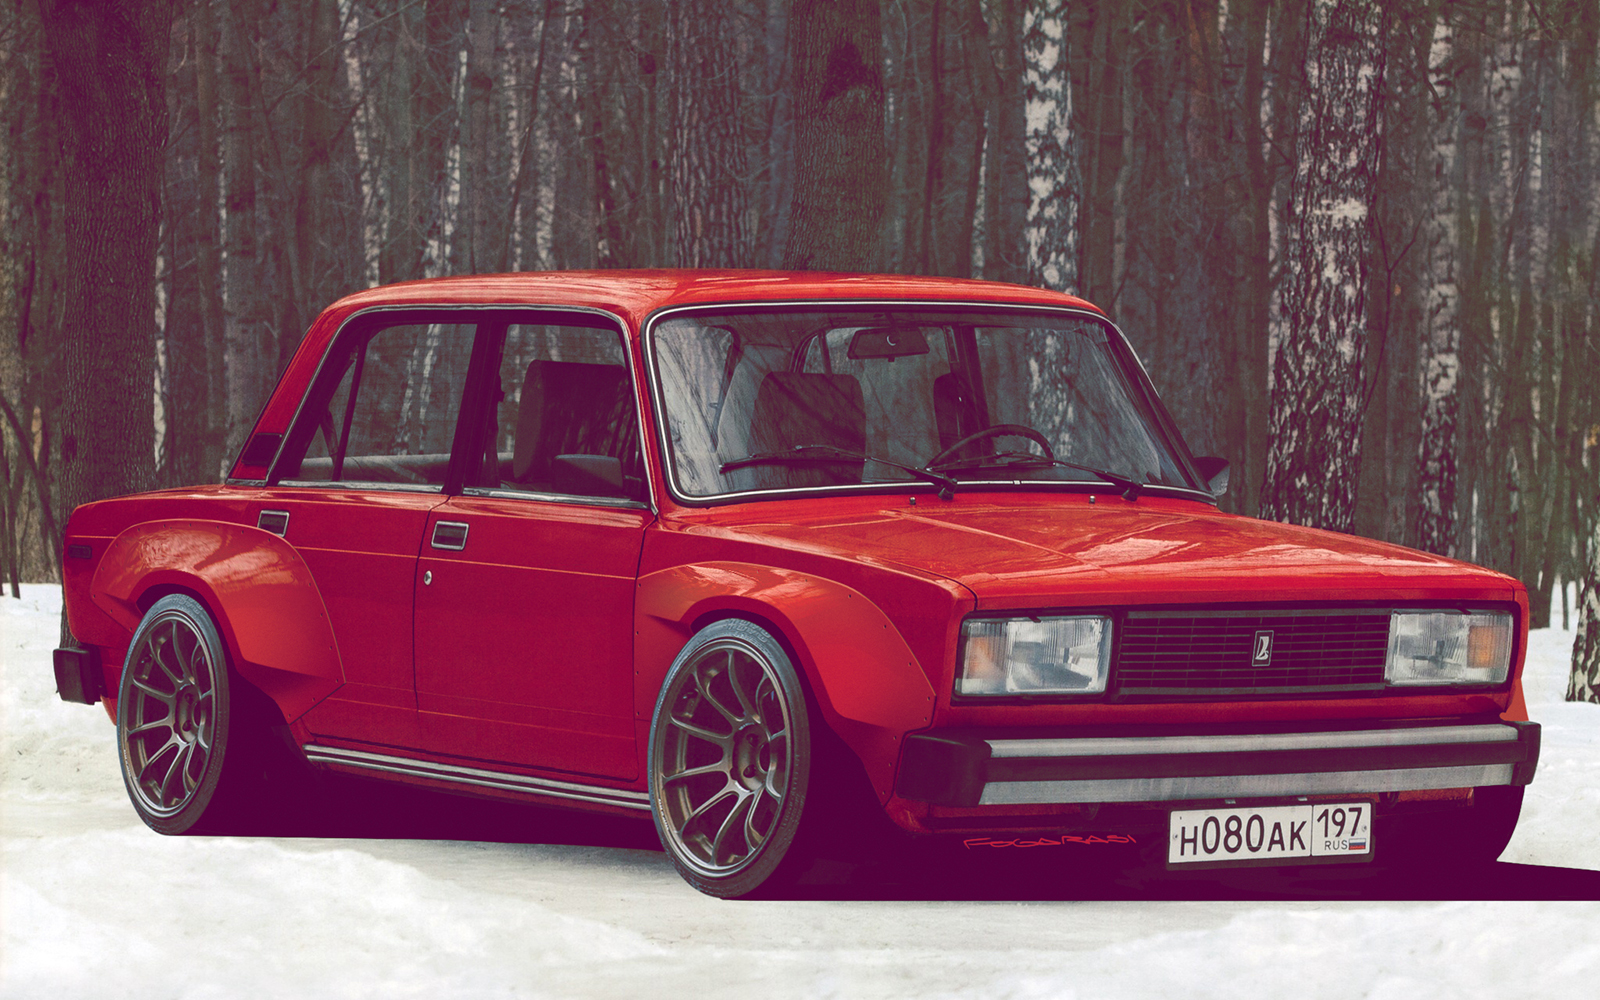 Ferrari Full Hd Wallpaper Lada Riva W Rocket Bunny